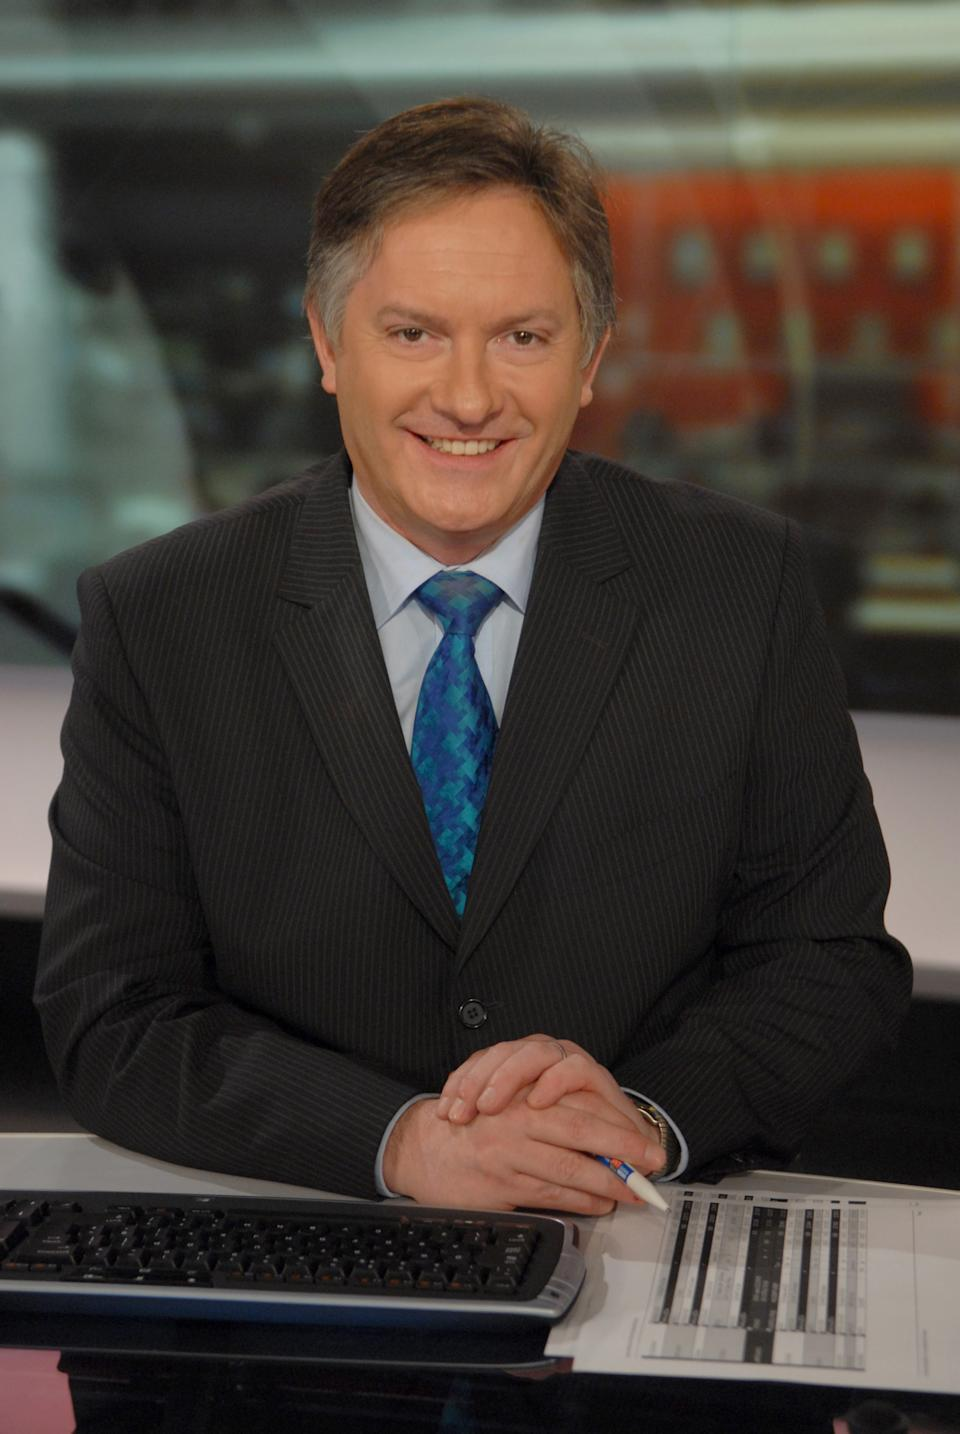 Portrait of BBC News presenter and broadcaster Simon McCoy, 09/04/2008. (Photo by Jeff Overs/BBC News & Current Affairs via Getty Images)